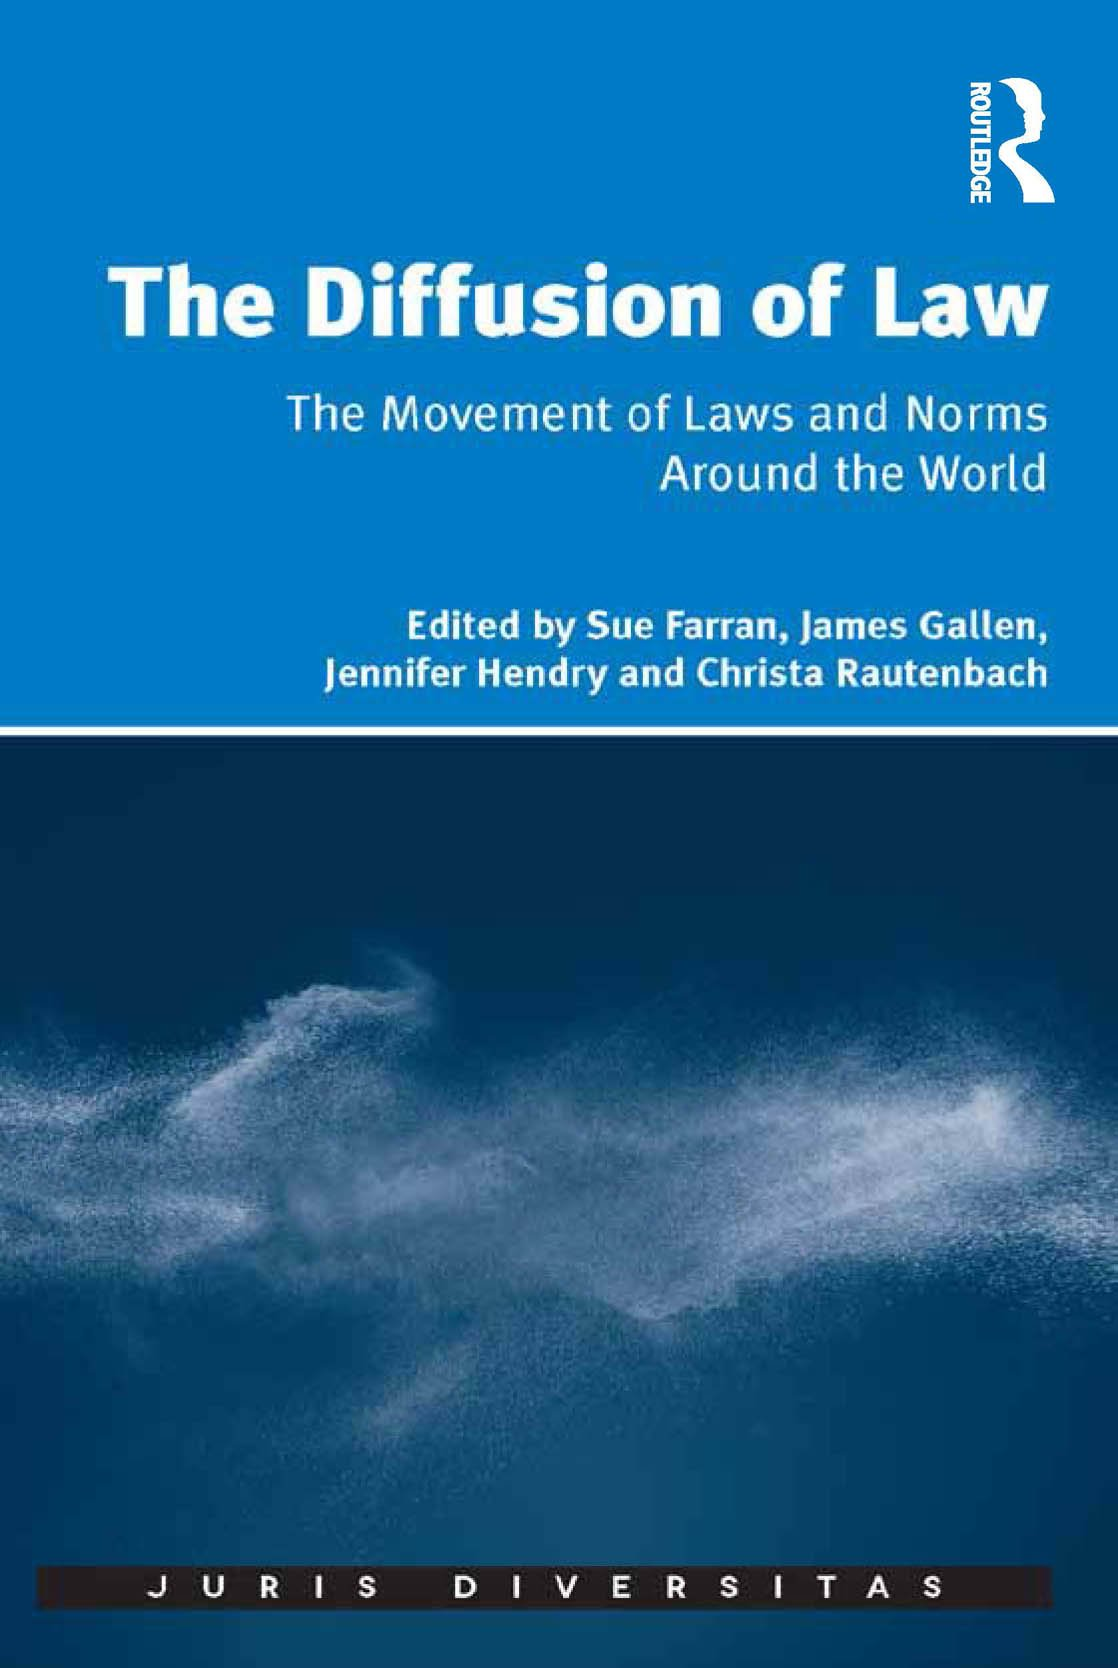 Image OfThe Diffusion Of Law: The Movement Of Laws And Norms Around The World (Juris Diversitas)